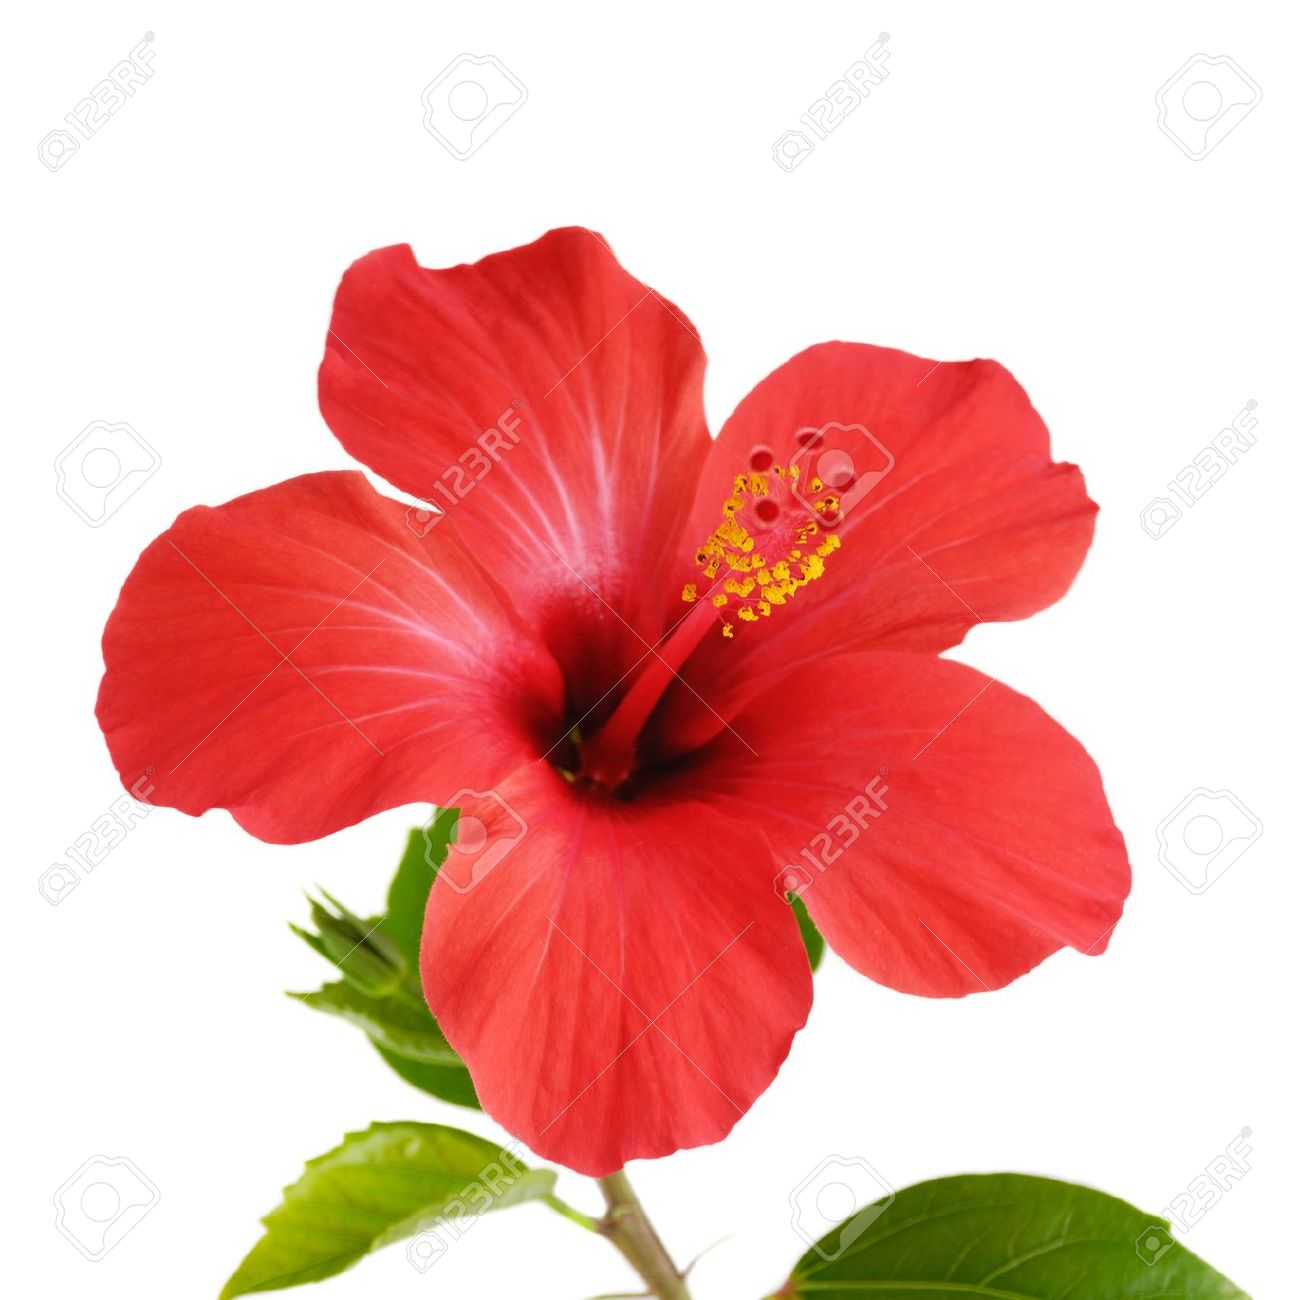 hibiscus stock photos pictures royalty free hibiscus images and